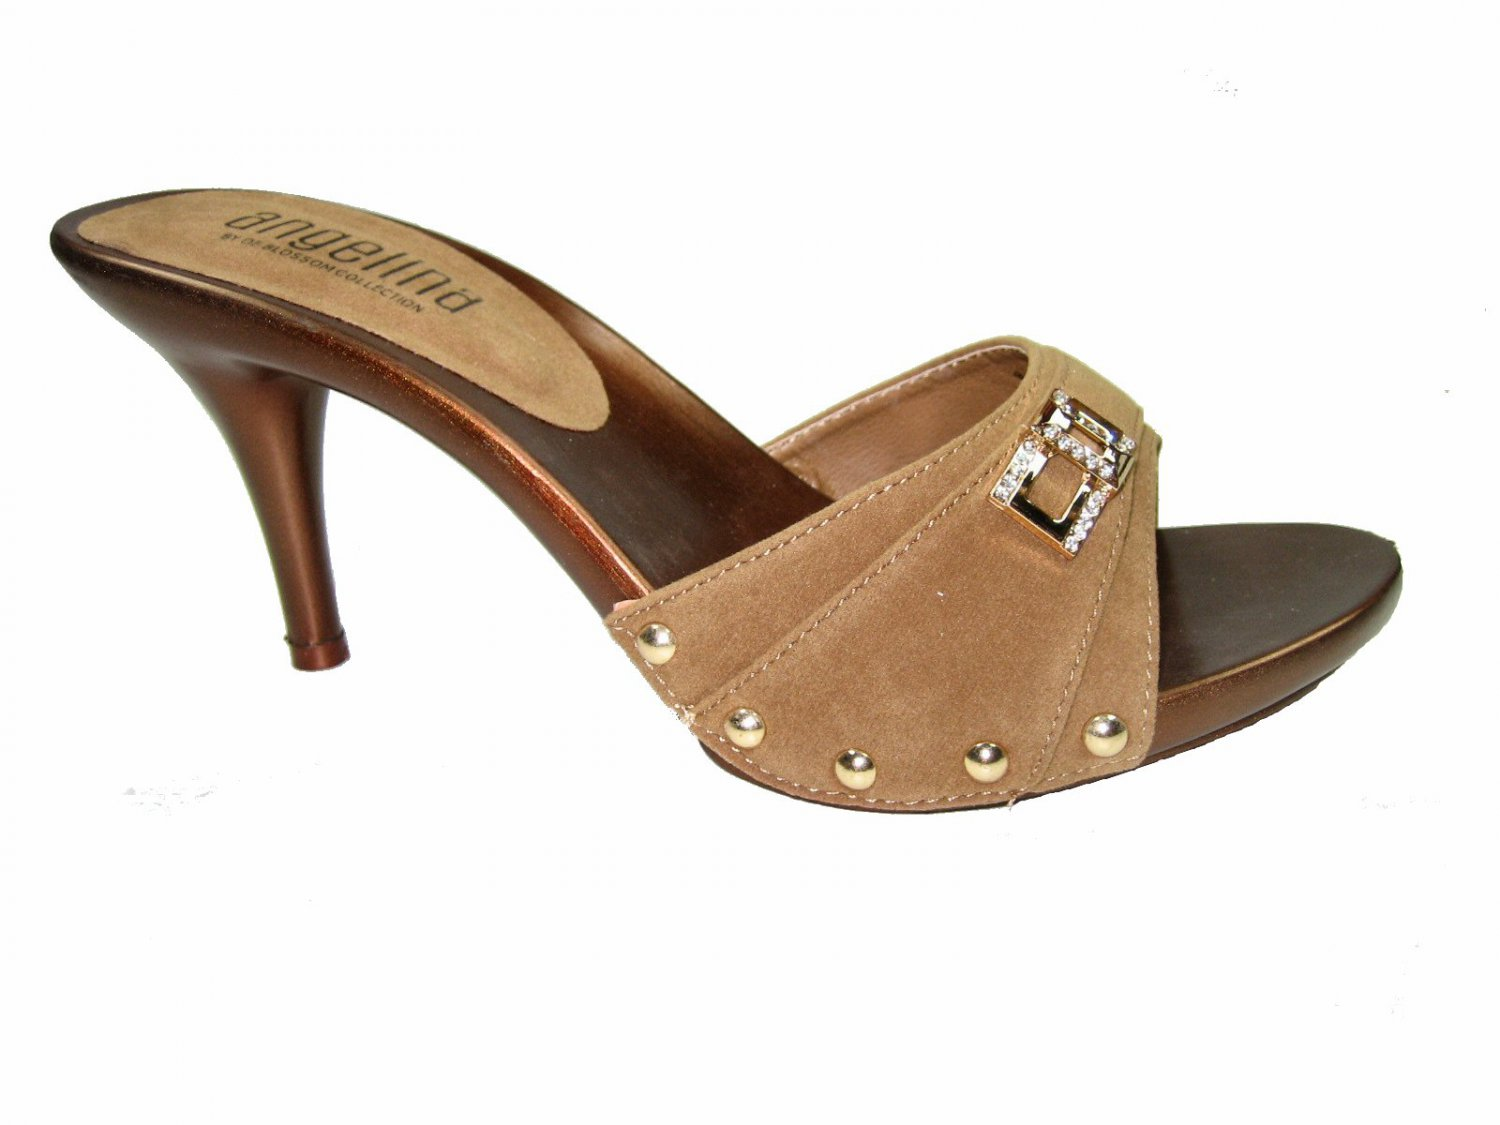 Blossom vote-56 one band slides mules 3.5 inch stiletto heel sandals vegan suede tan size 6.5